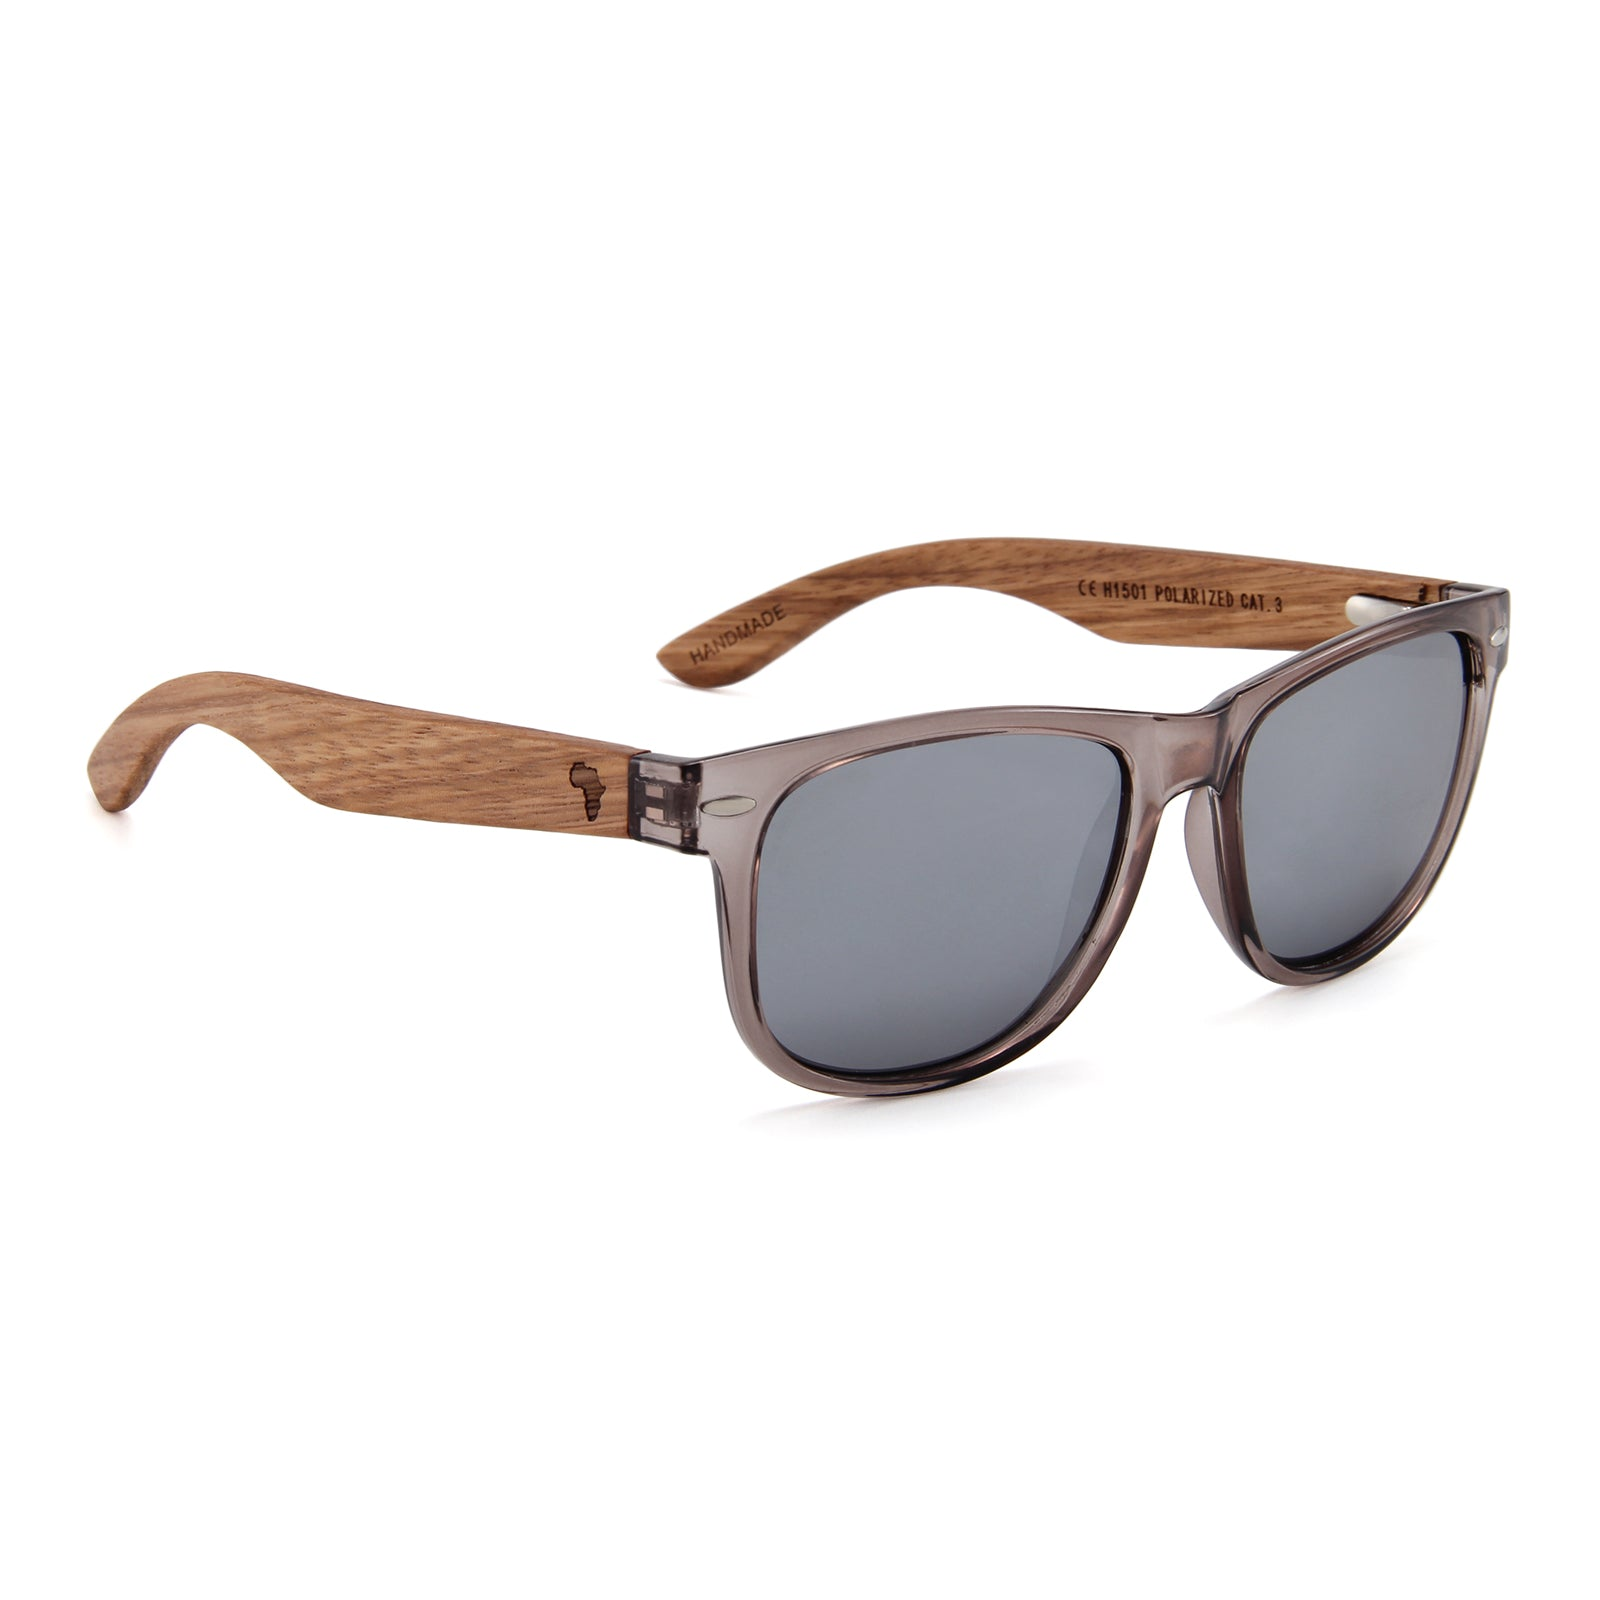 Zebra Wood Wayfarer Style Sunglasses (Grey with Silver REVO Lens)